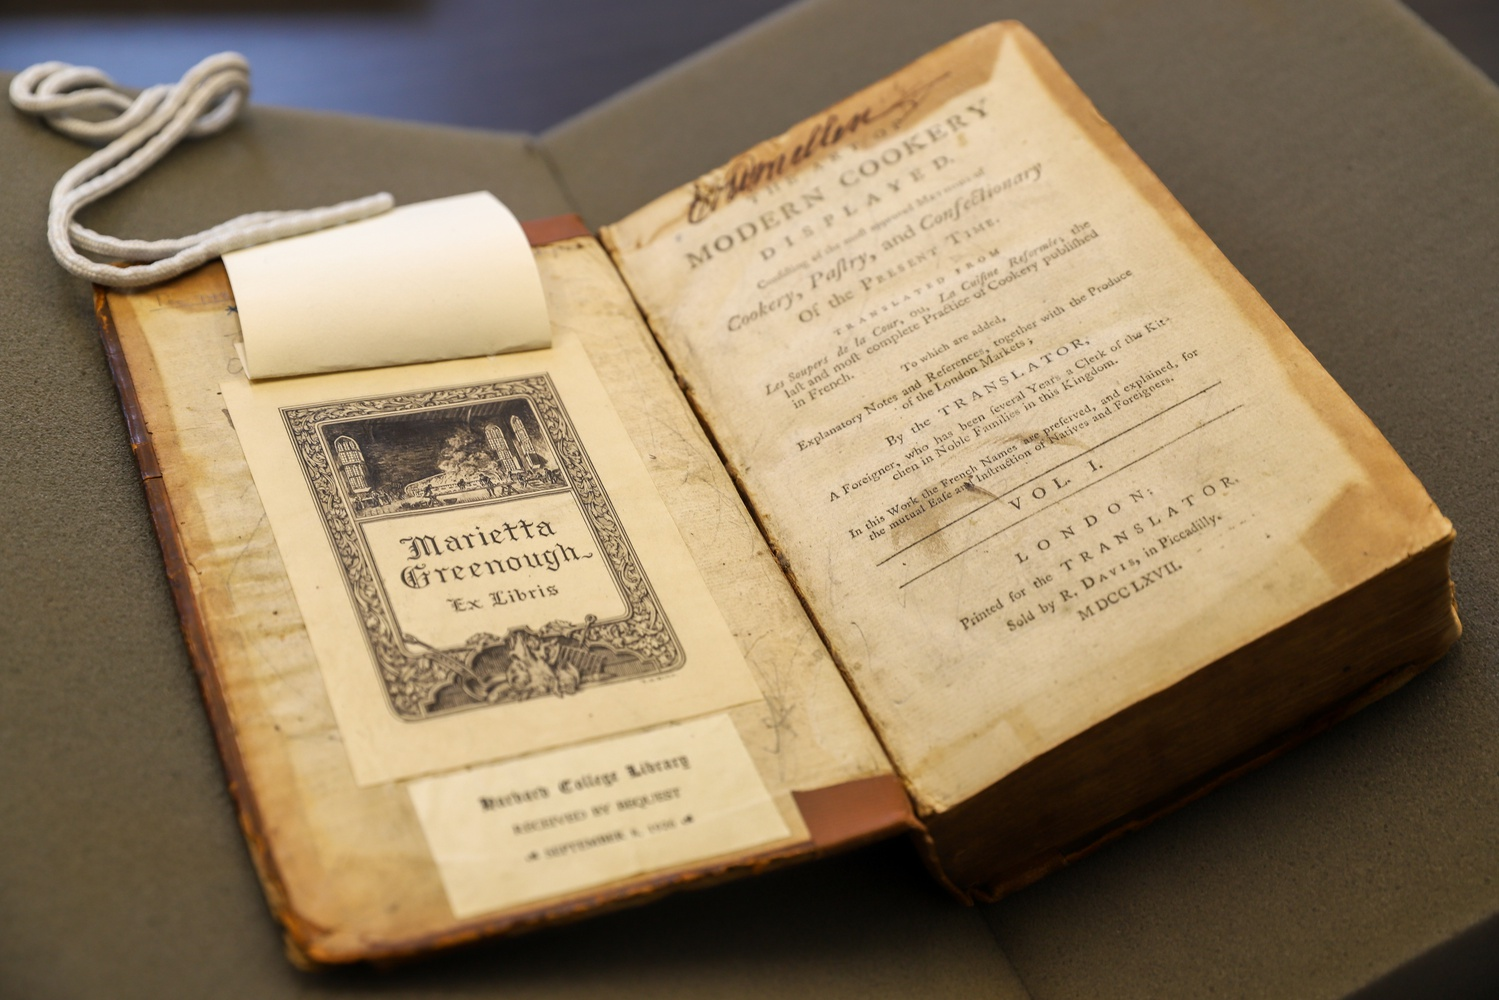 After Marietta Greenough bequeathed her cookbooks to Widener Library in her will, her books made up the bulk of the original cookbook collection at the Harvard Library system.